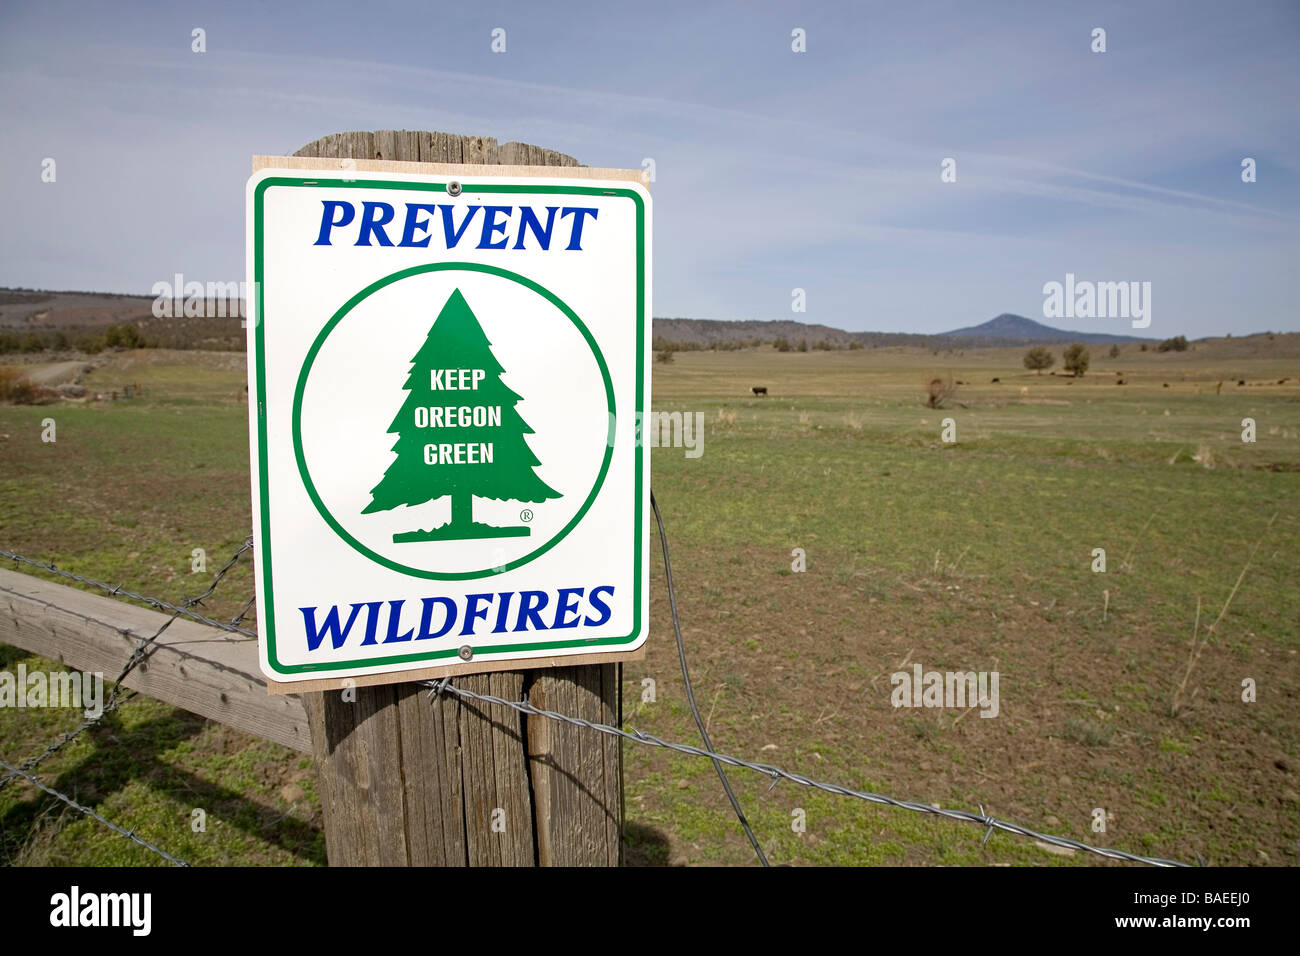 A Prevent Wildfires sign on a fencepost says Keep Oregon Green - Stock Image